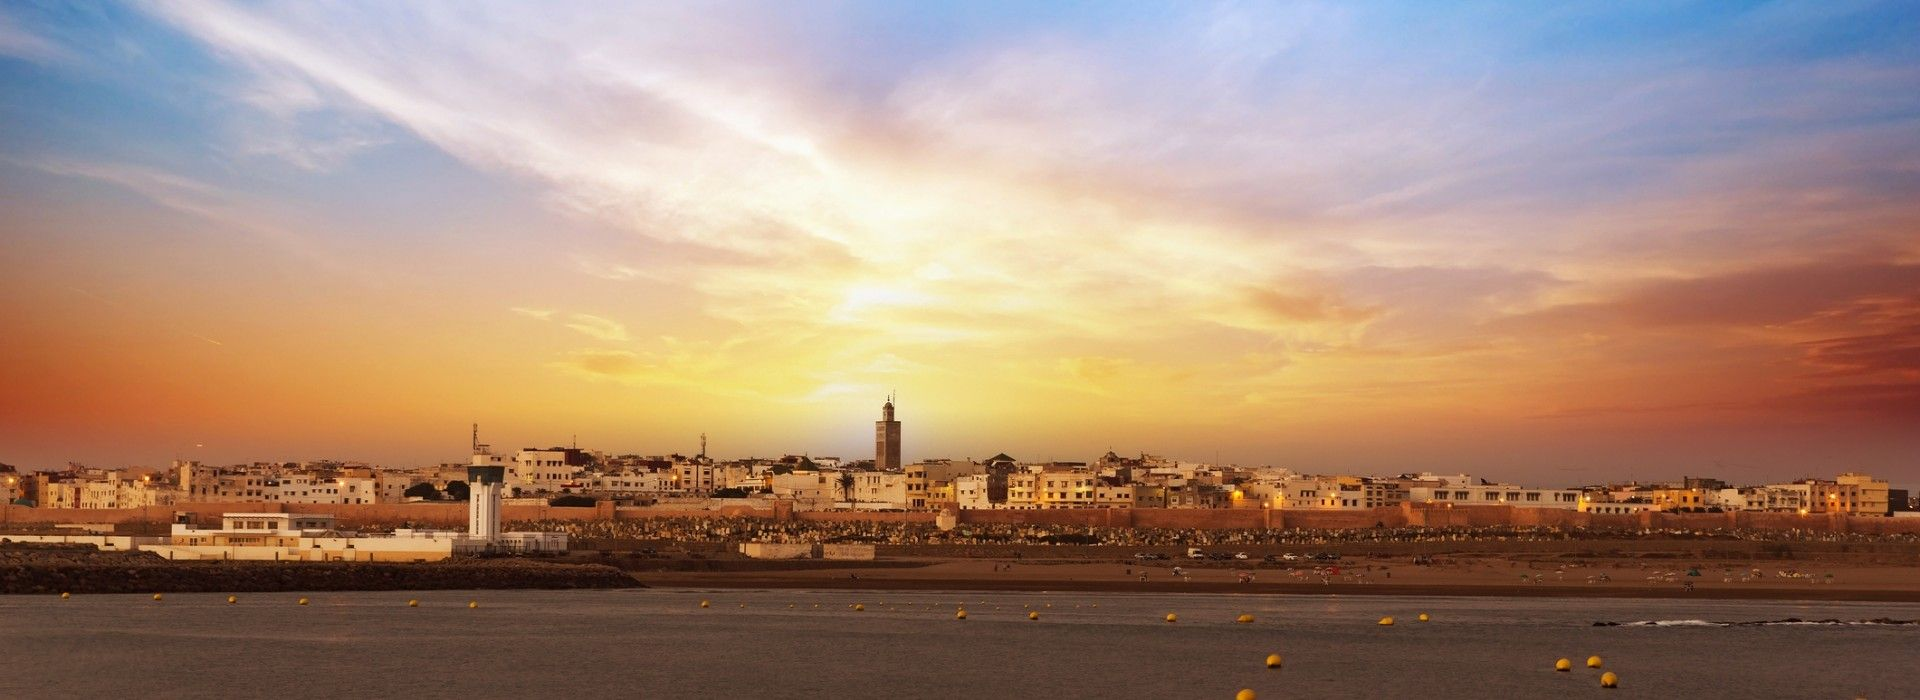 Countryside and village visits Tours in Morocco